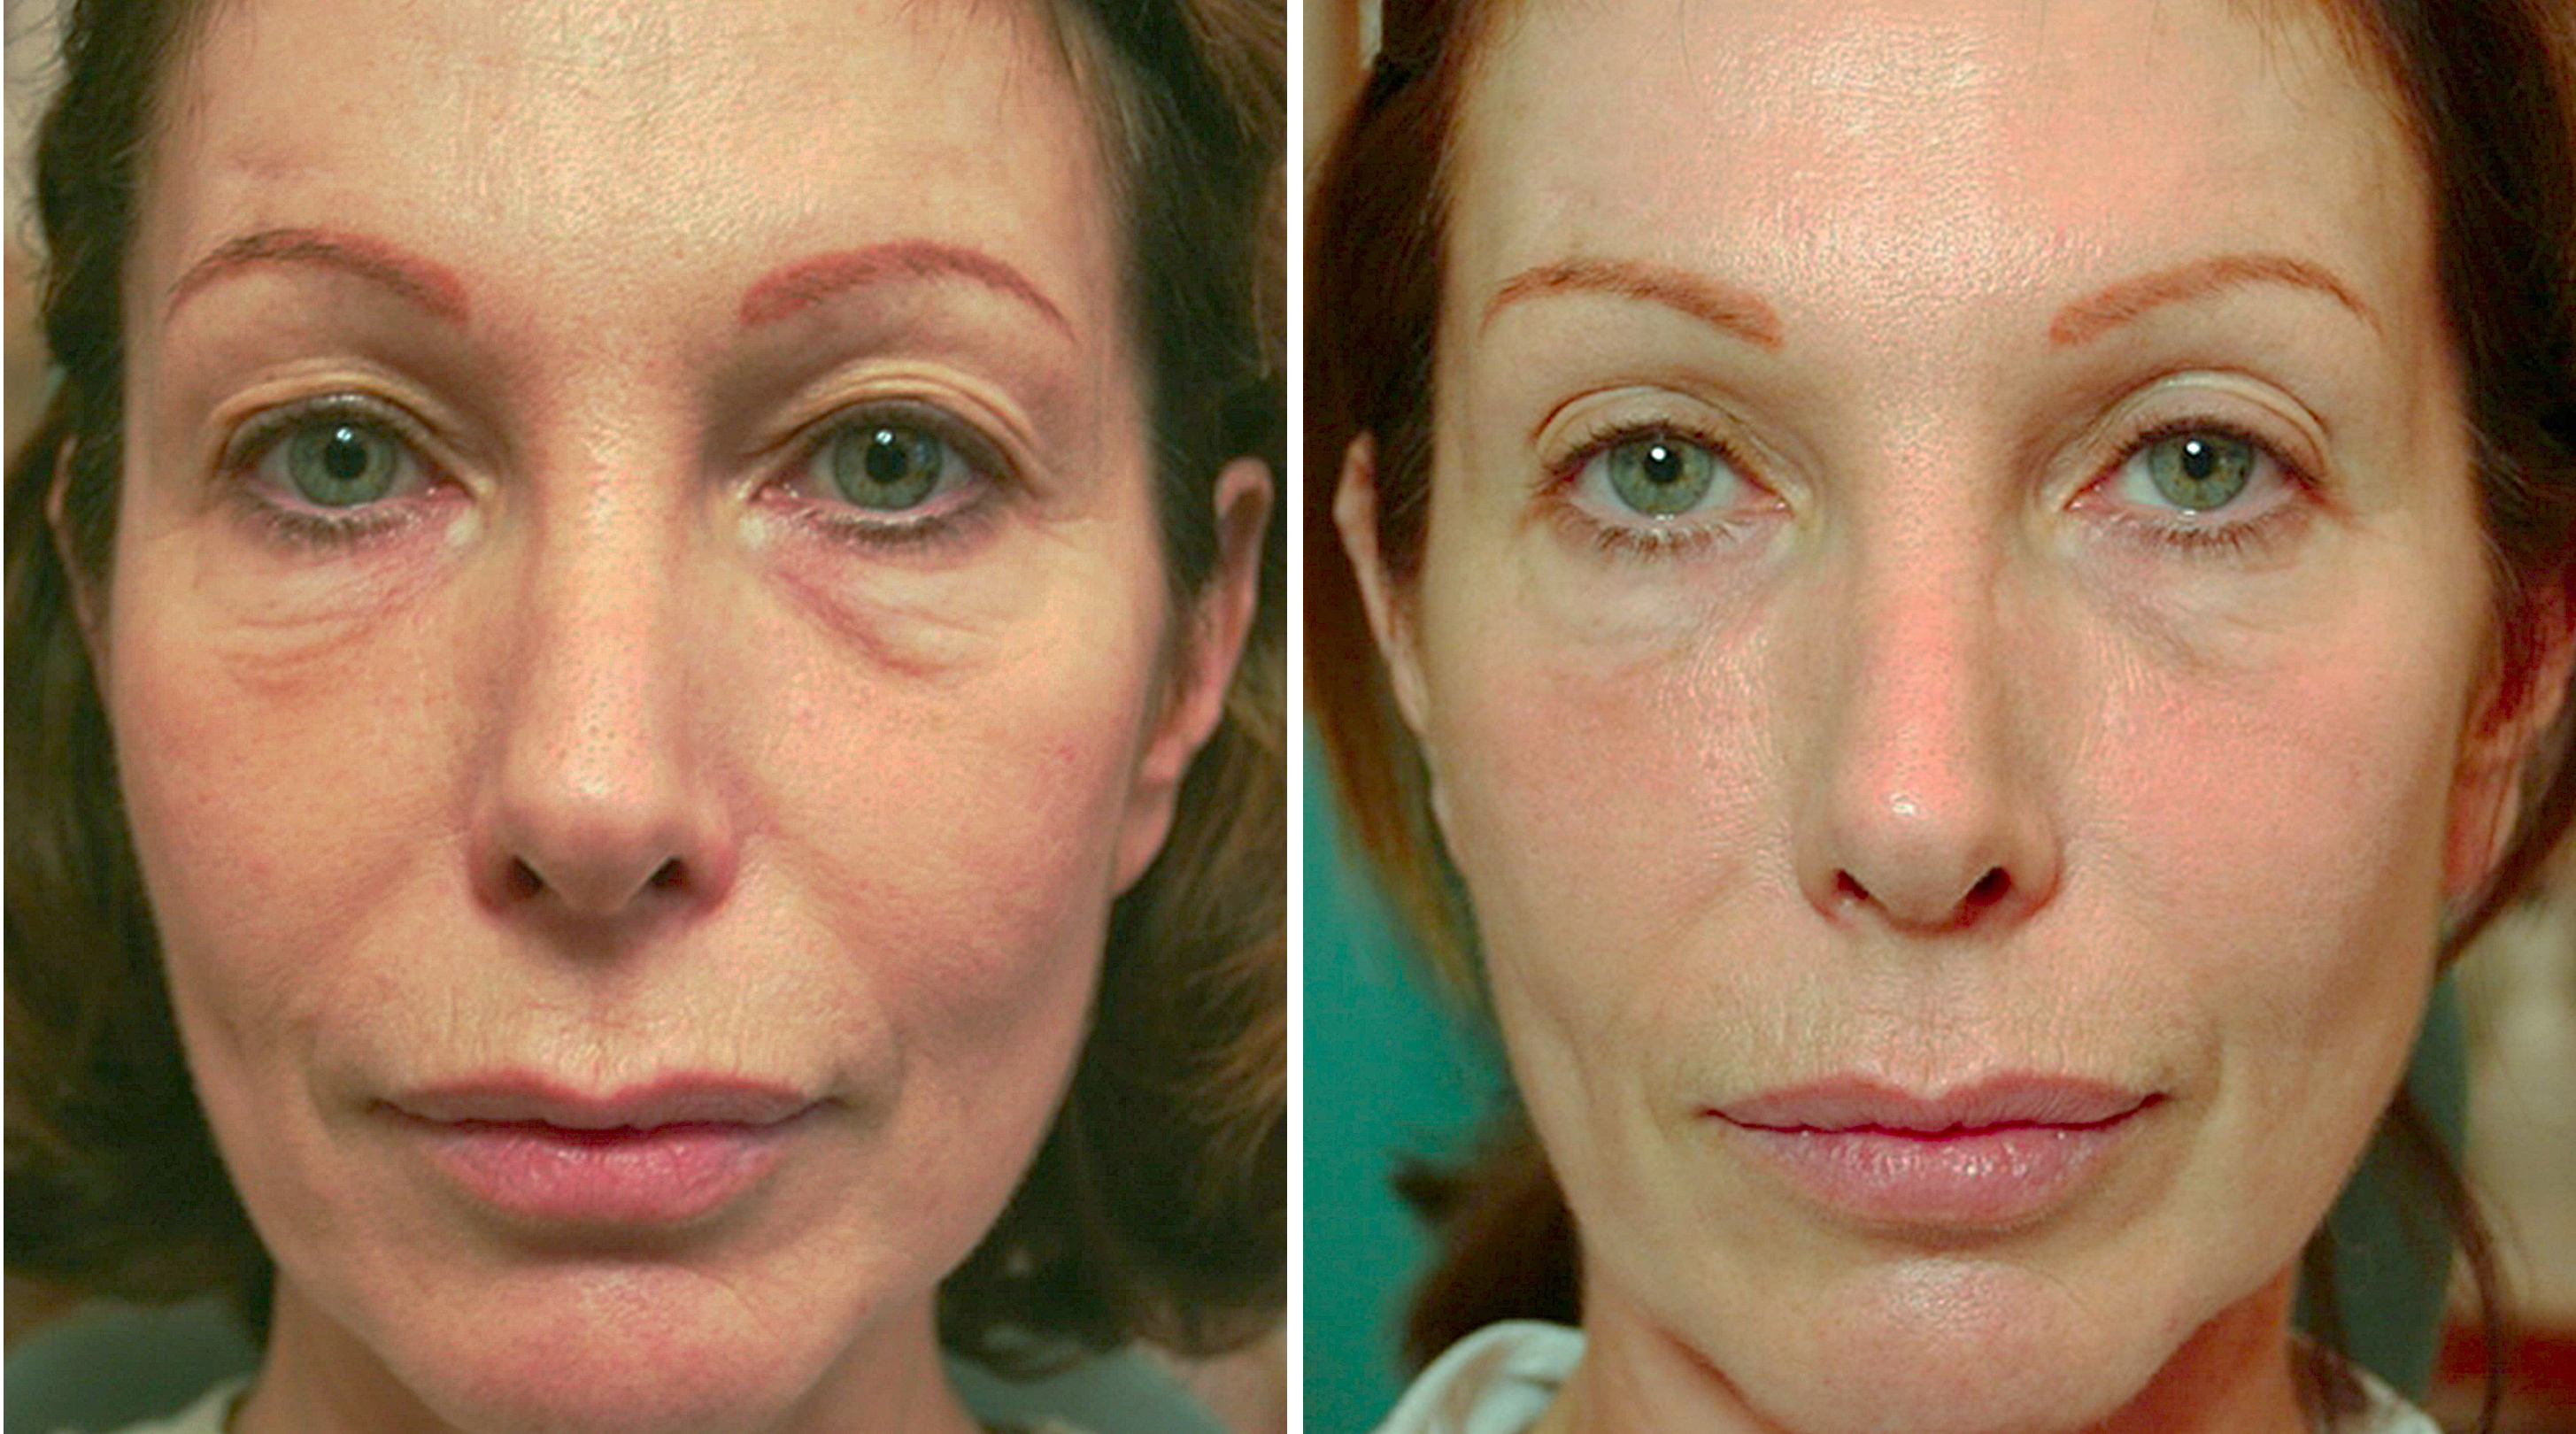 10 month results of fulll face treatment by Nelly Gauthier, MD